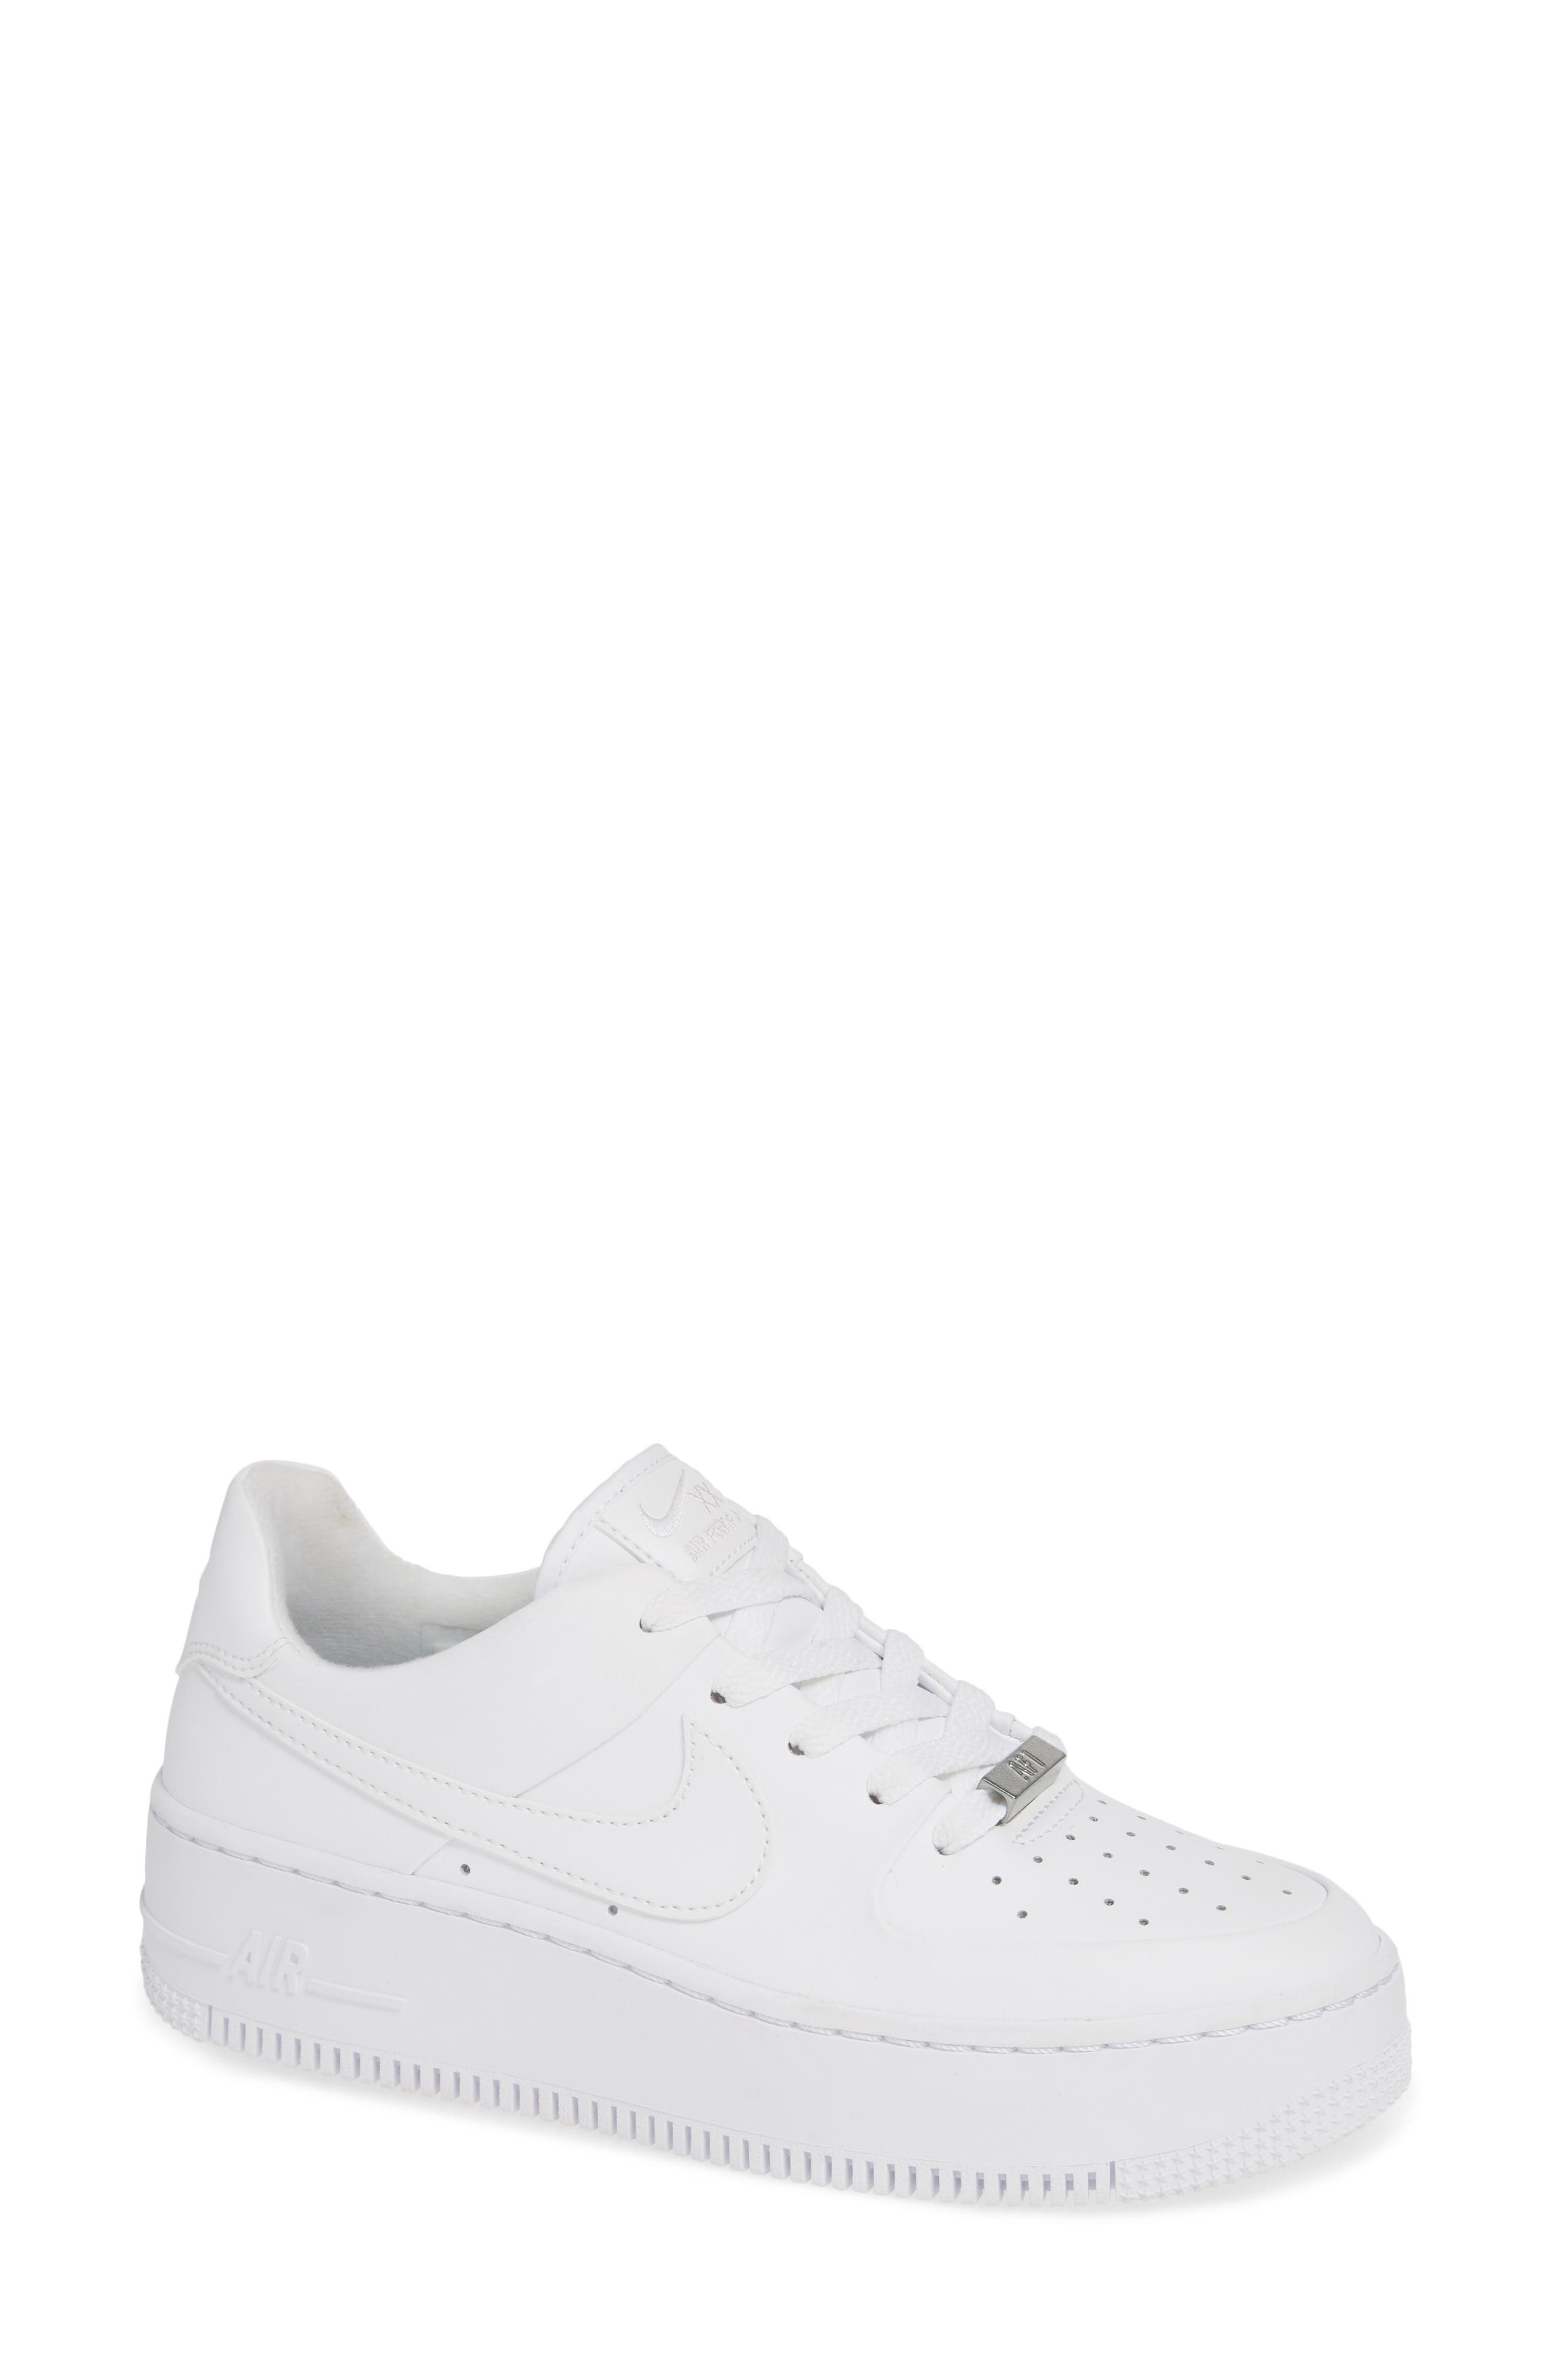 white shoes for women